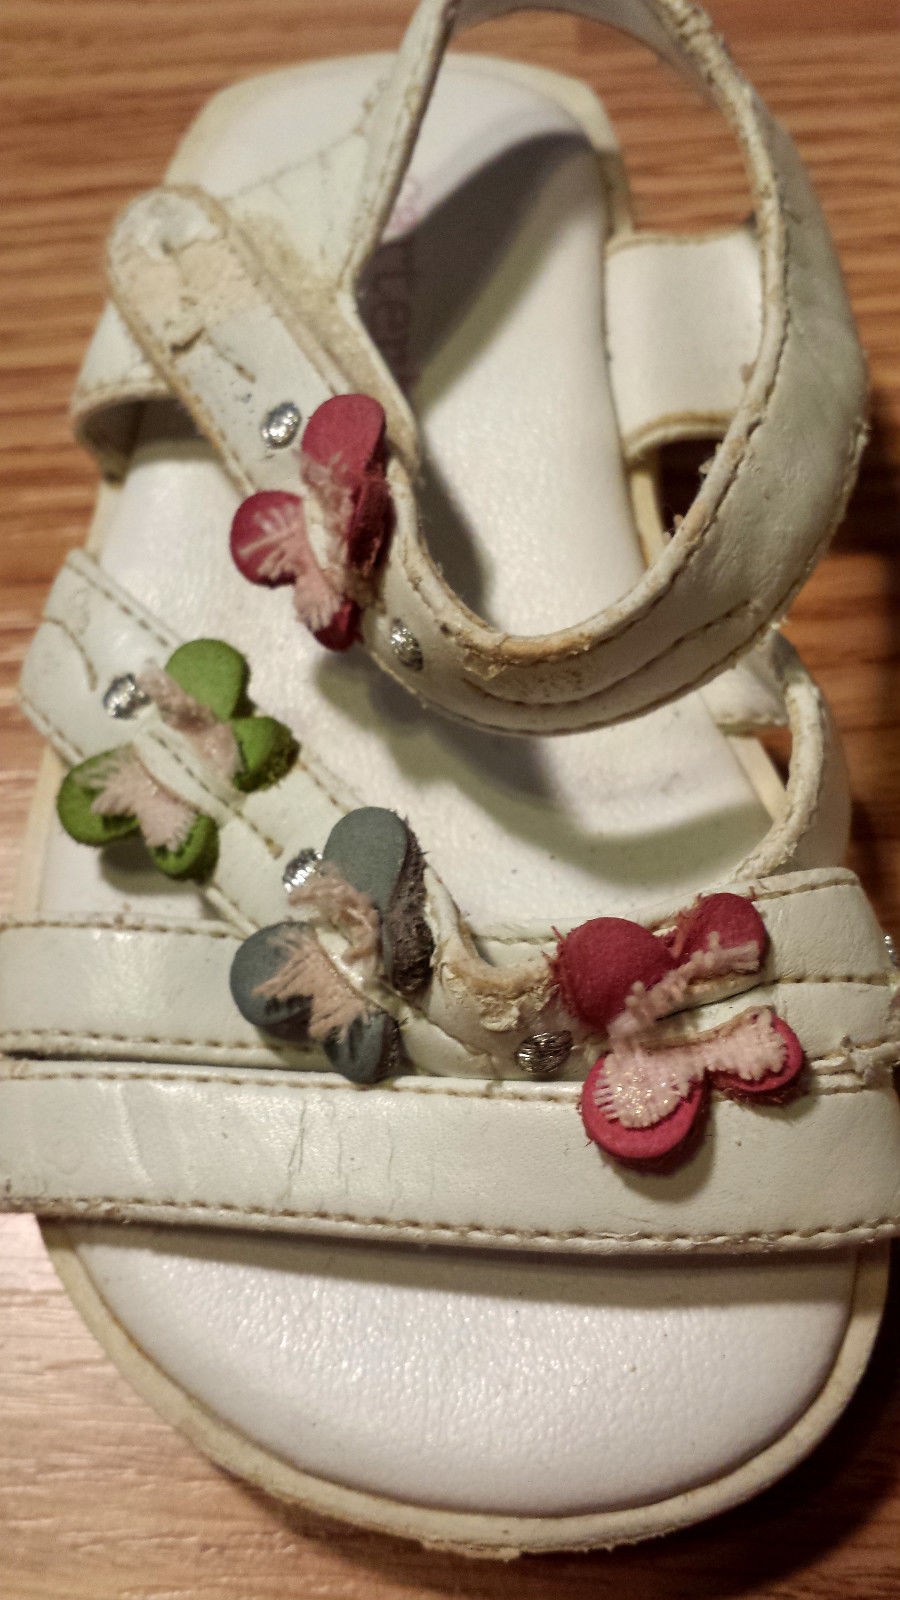 Baby Girl's Size 3 Infant Toddler White Butterfly Designed Carter's Sandals USED